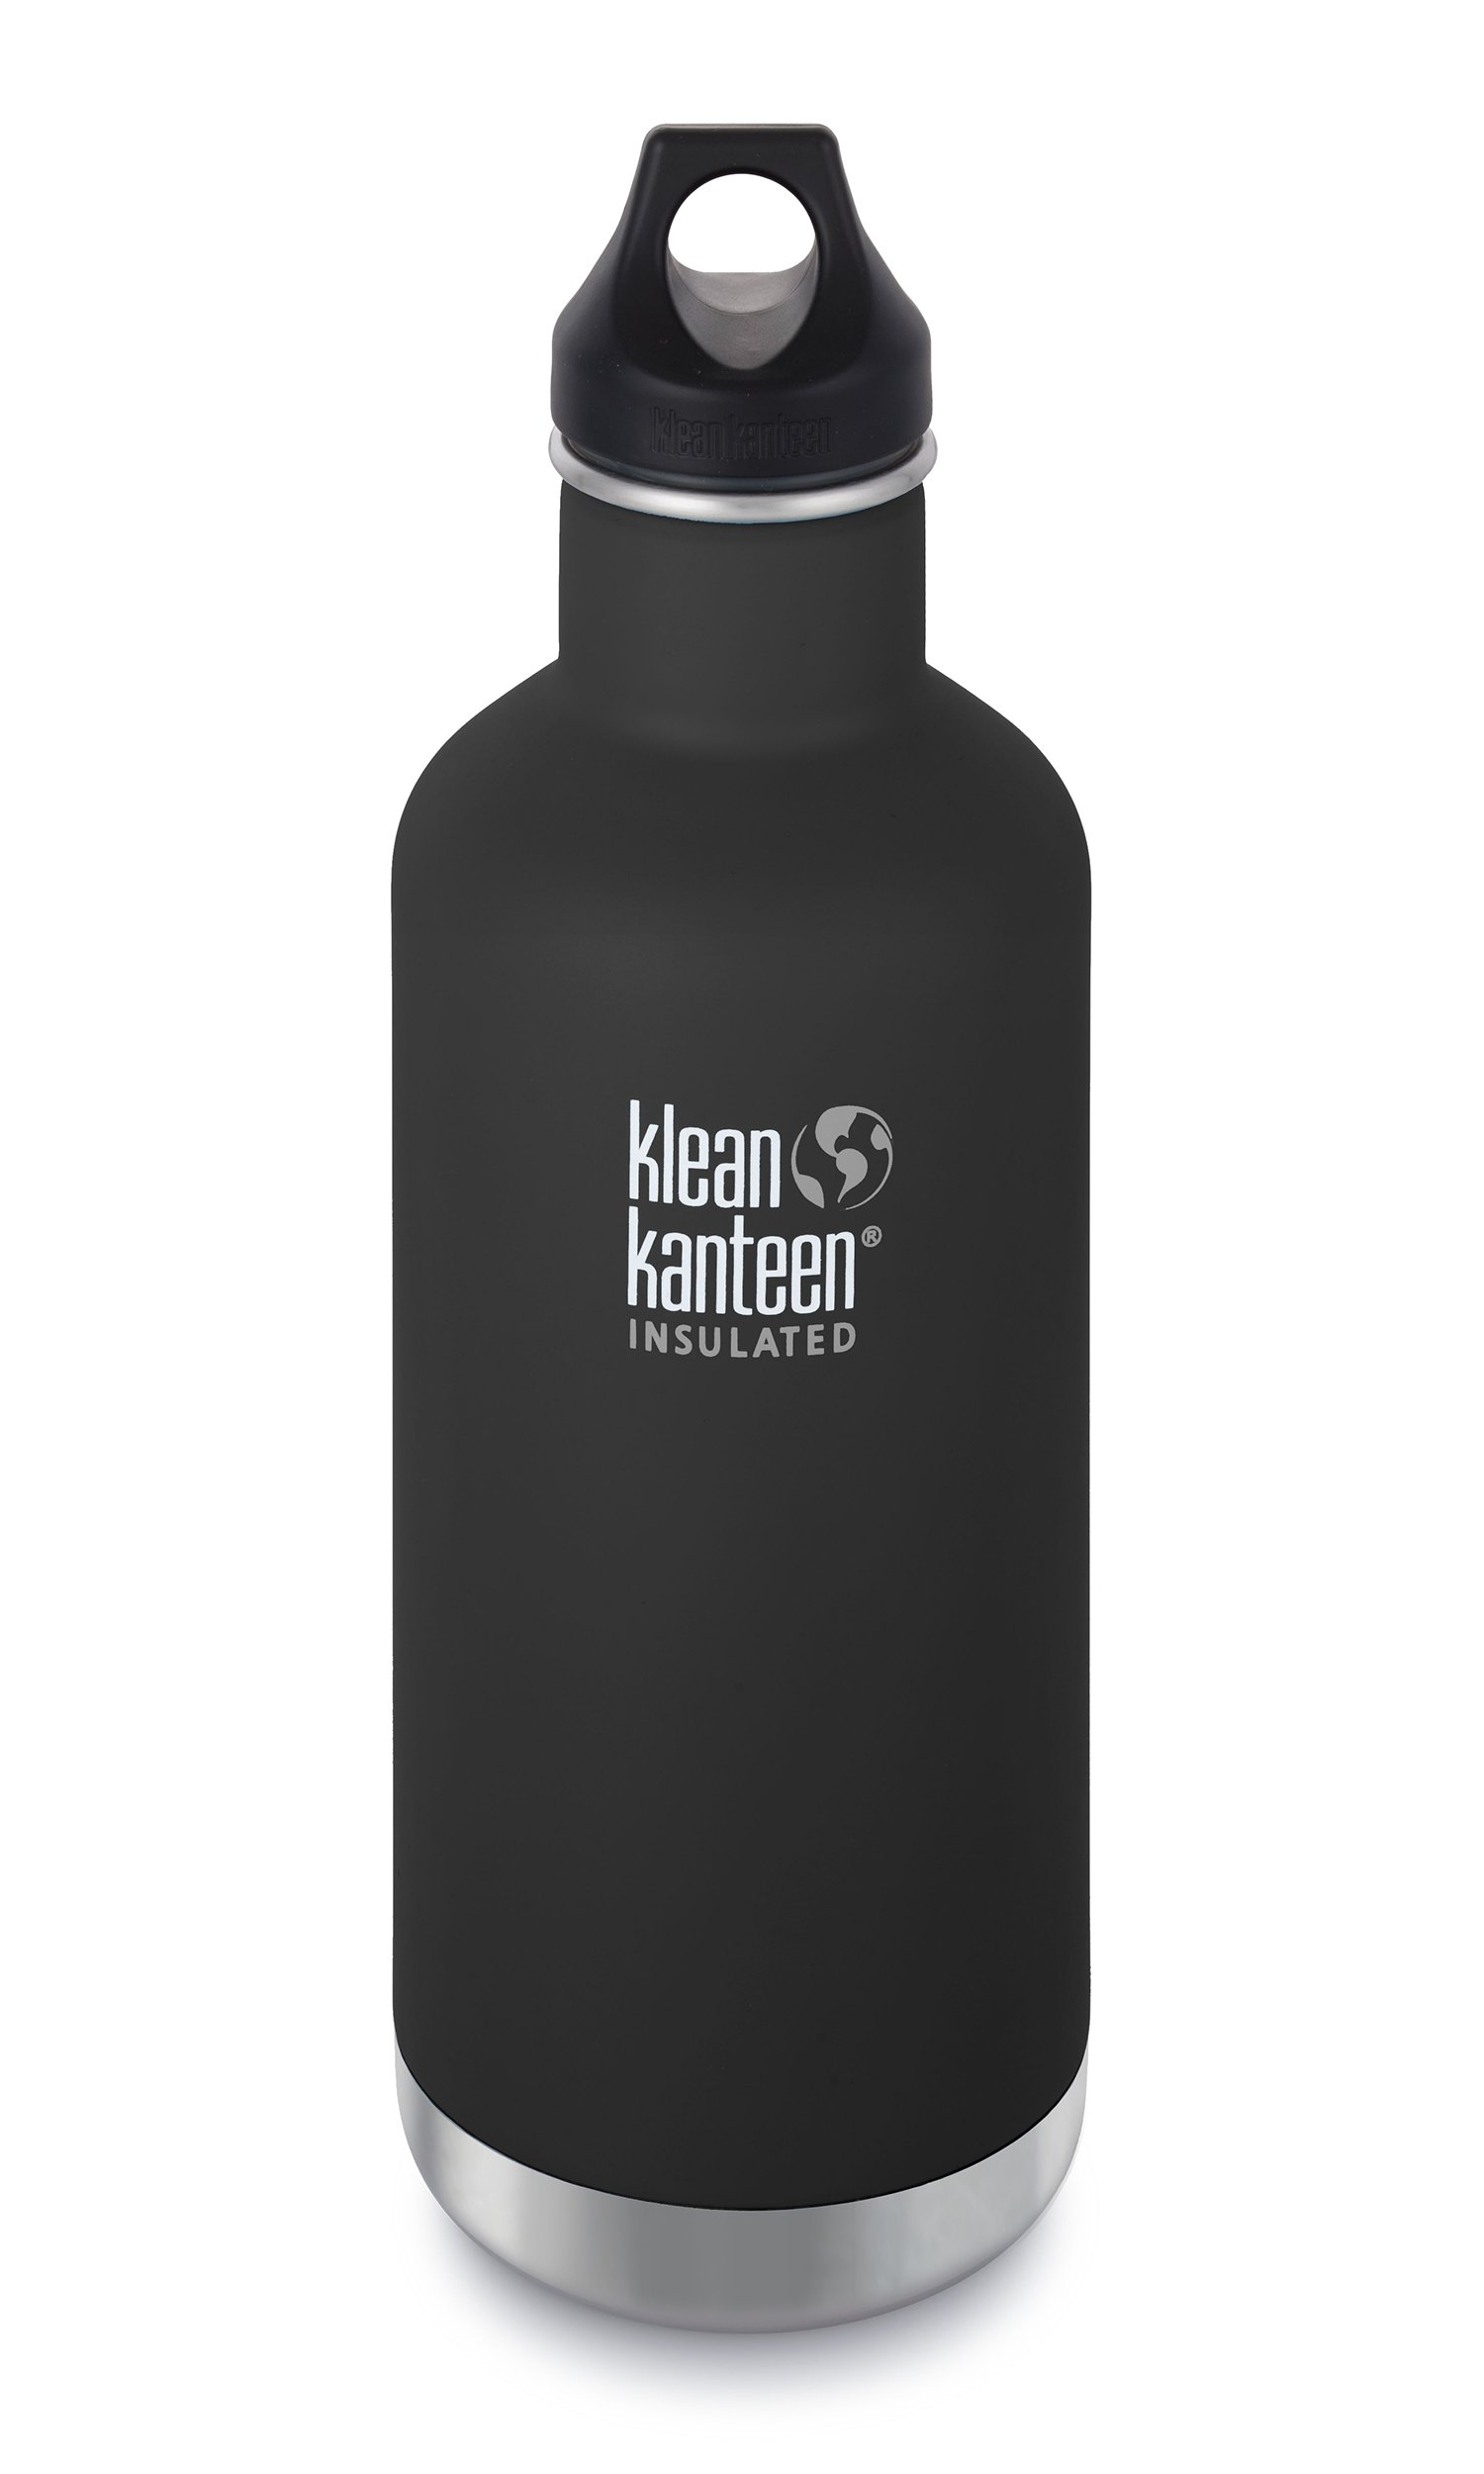 Klean Kanteen Classic Vacuum Insulated with Loop Cap, Shale Black, 32 oz.